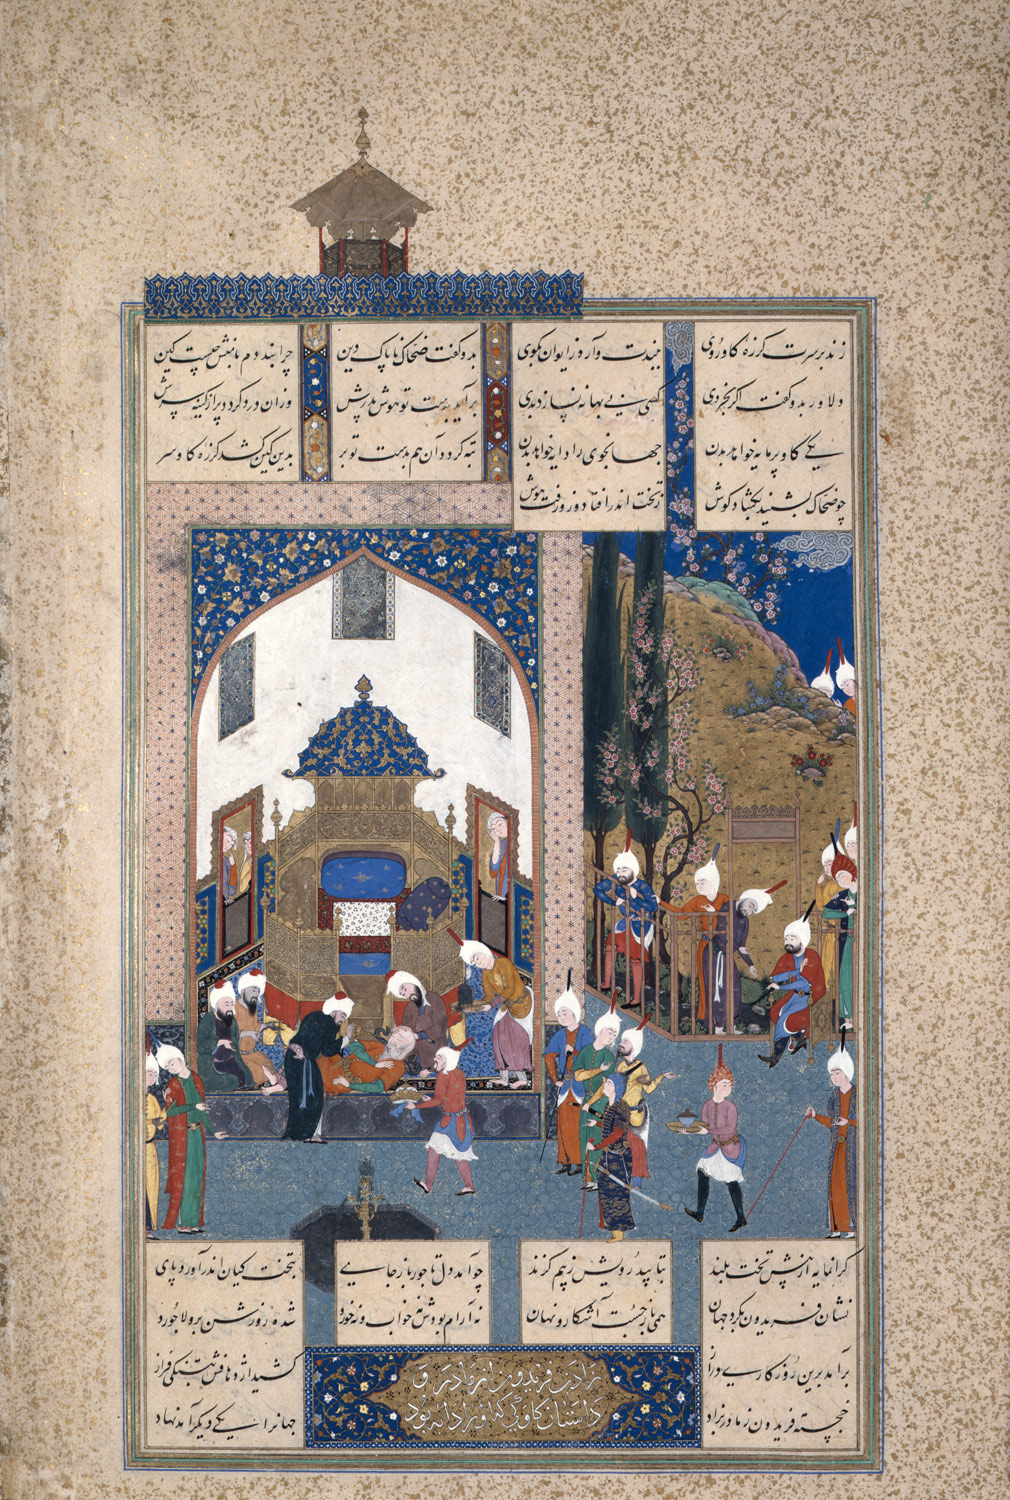 Zahhak is Told His Fate -Folio 29v from the Shahnama (Book of Kings) of Shah Tahmasp